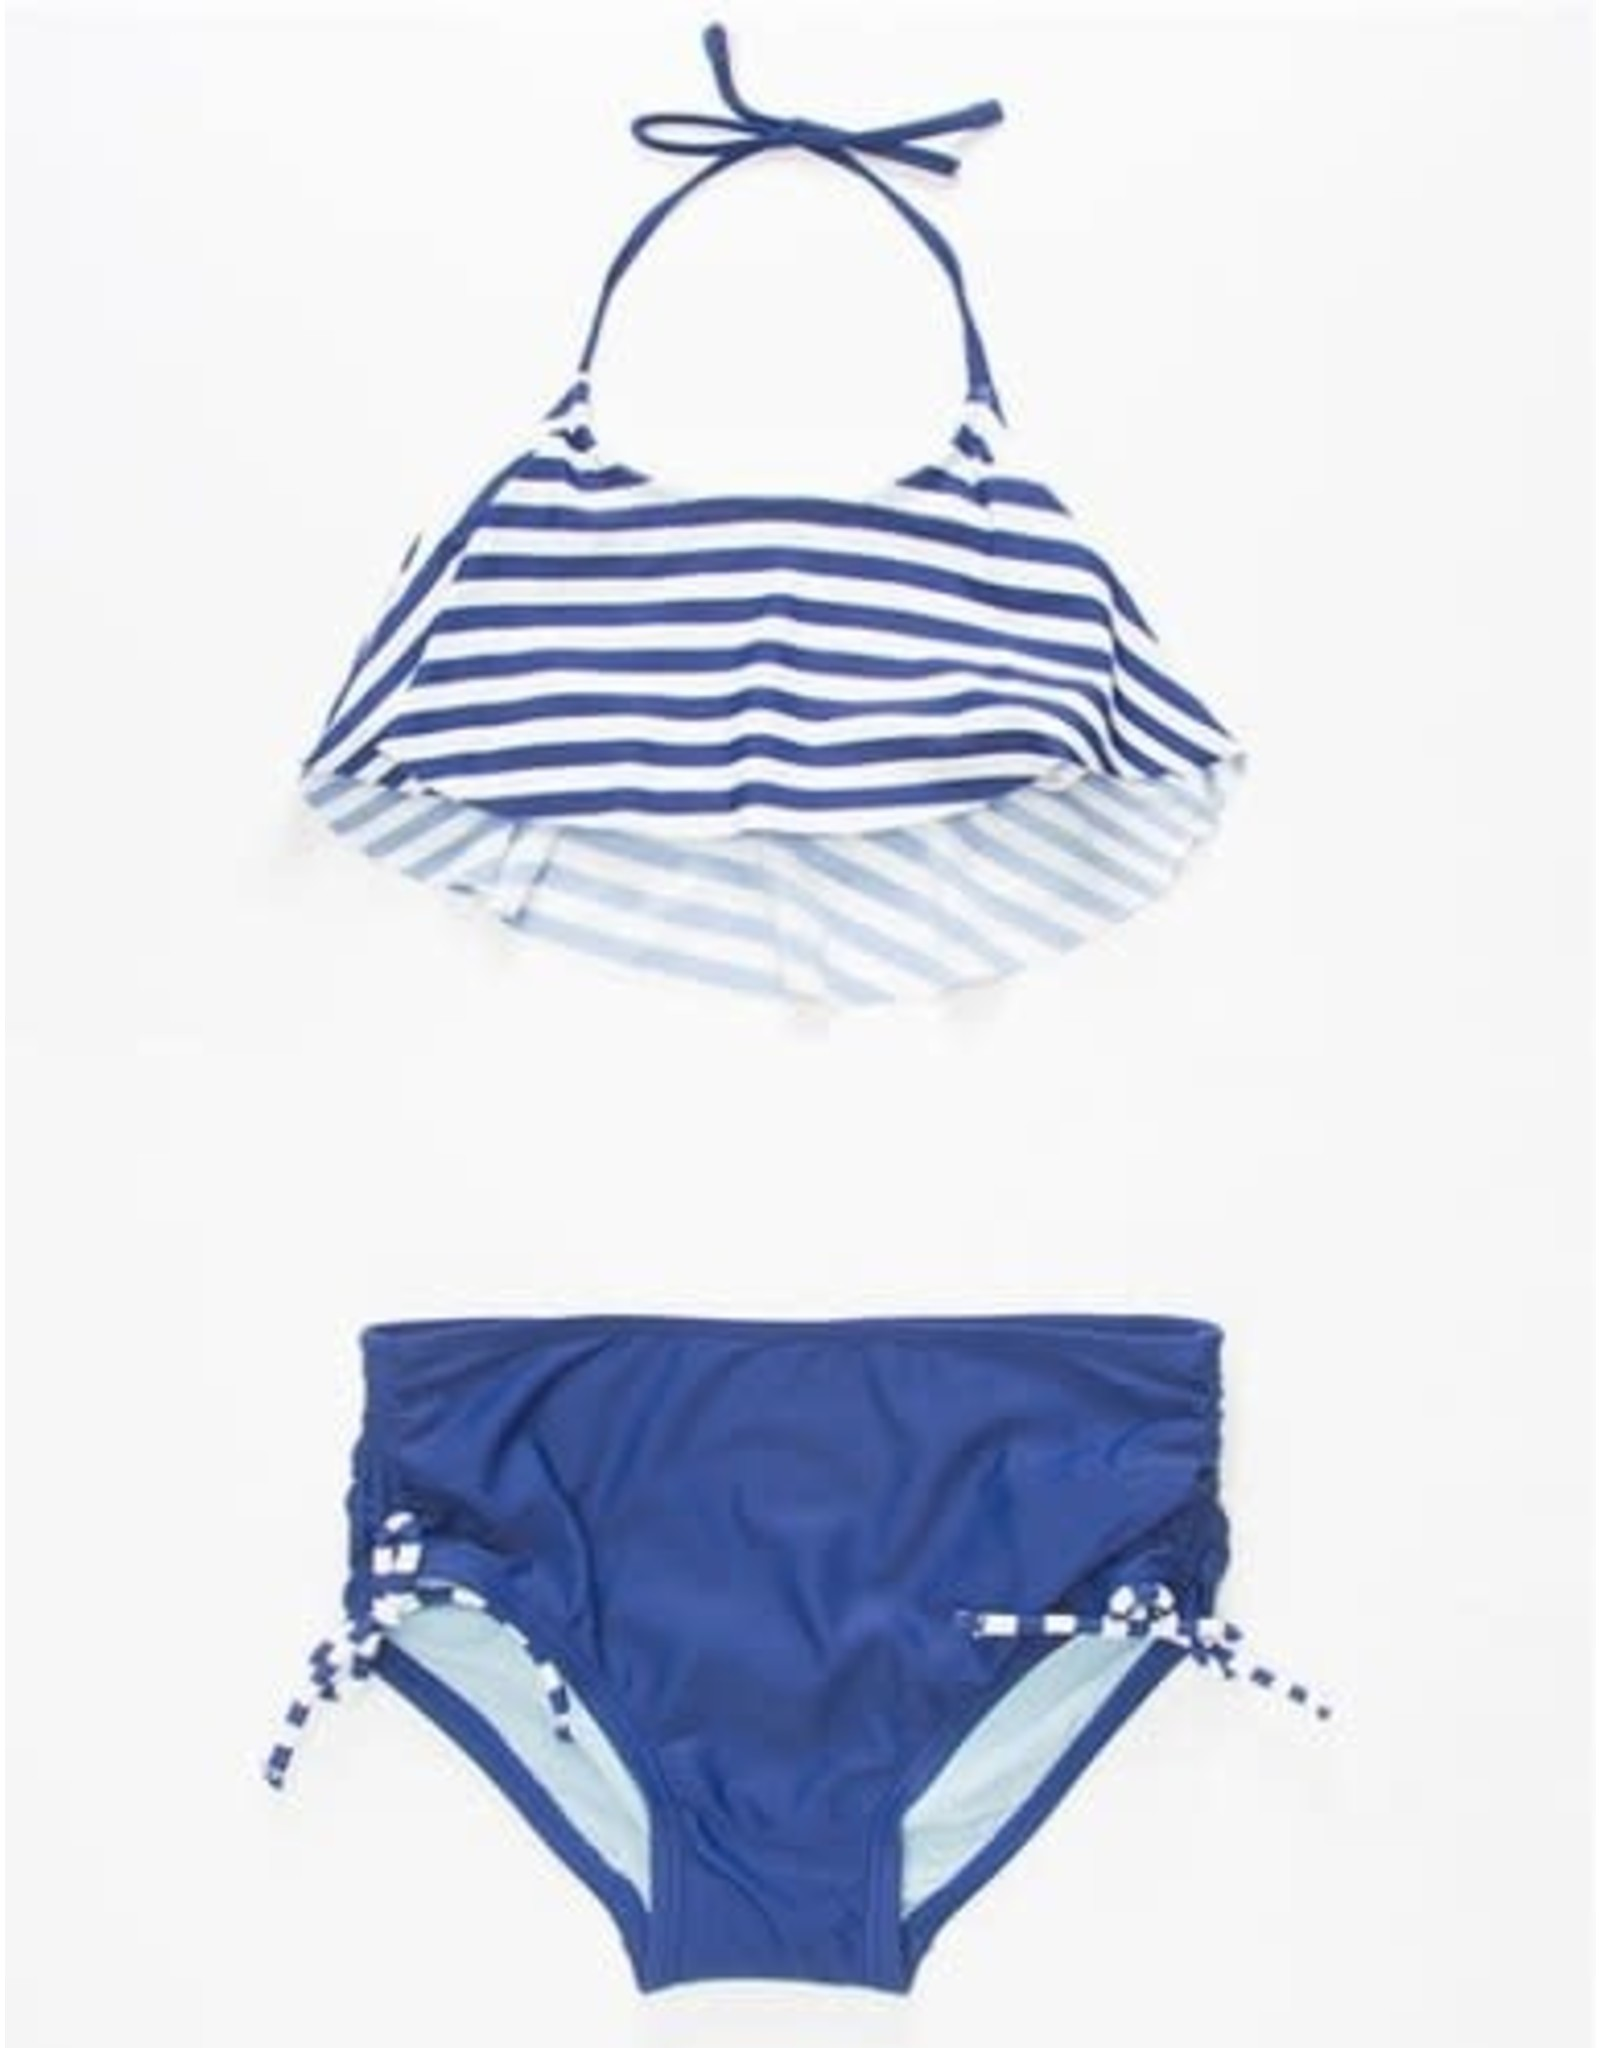 Malibu Design Group 2 Piece Navy/White Striped